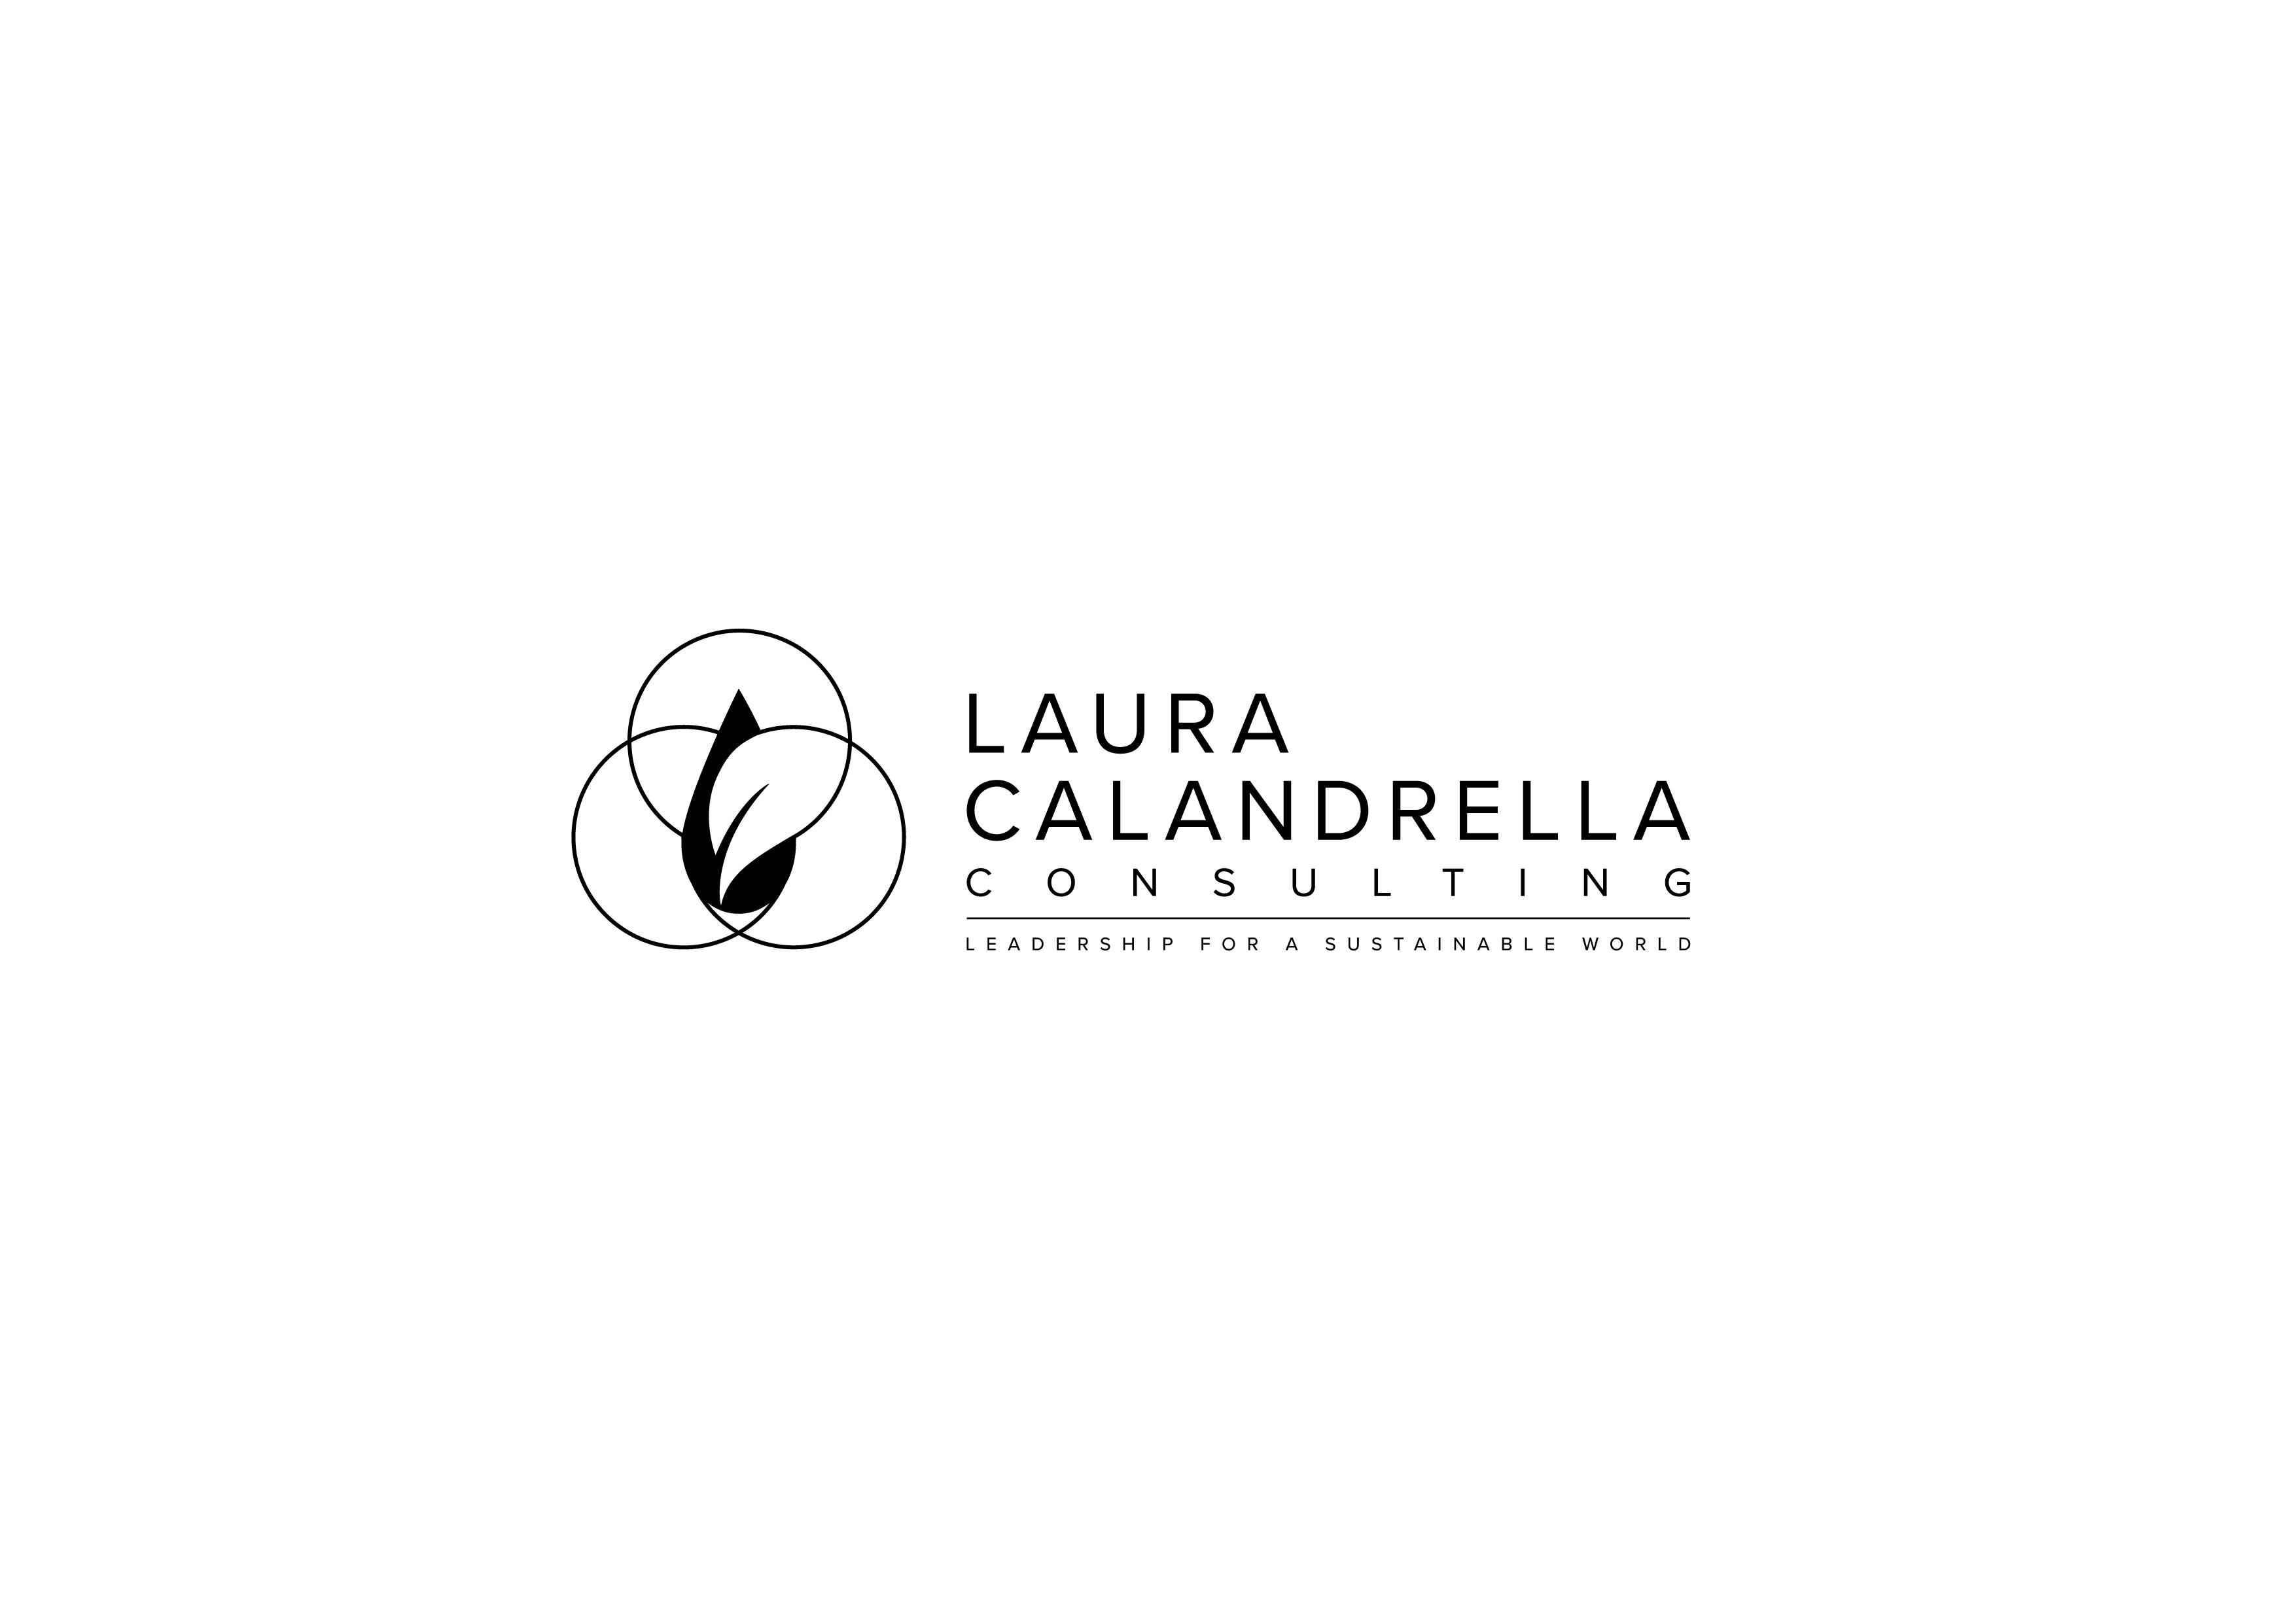 Design a luxury logo with high nature / sustainability vibes for a consultant